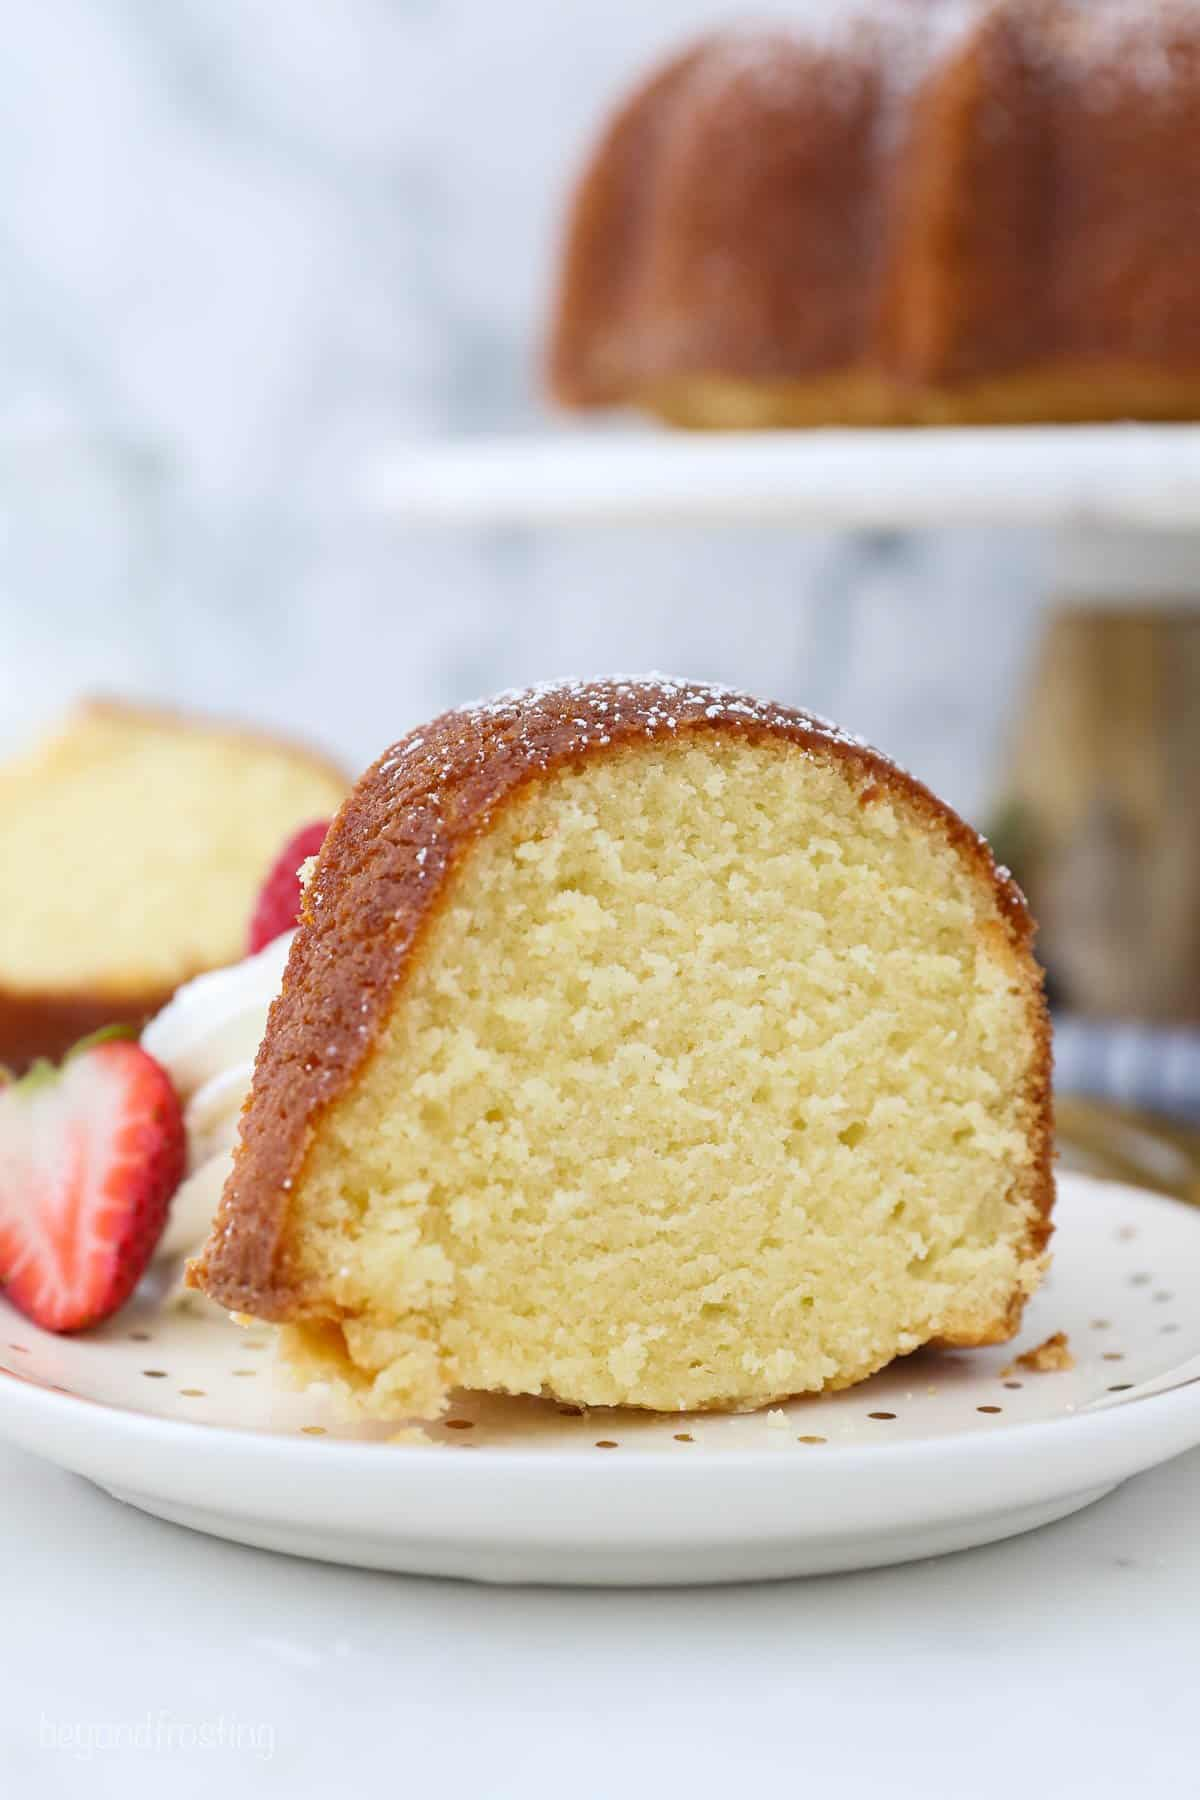 A piece of homemade pound cake sitting on a plate with strawberries and cream